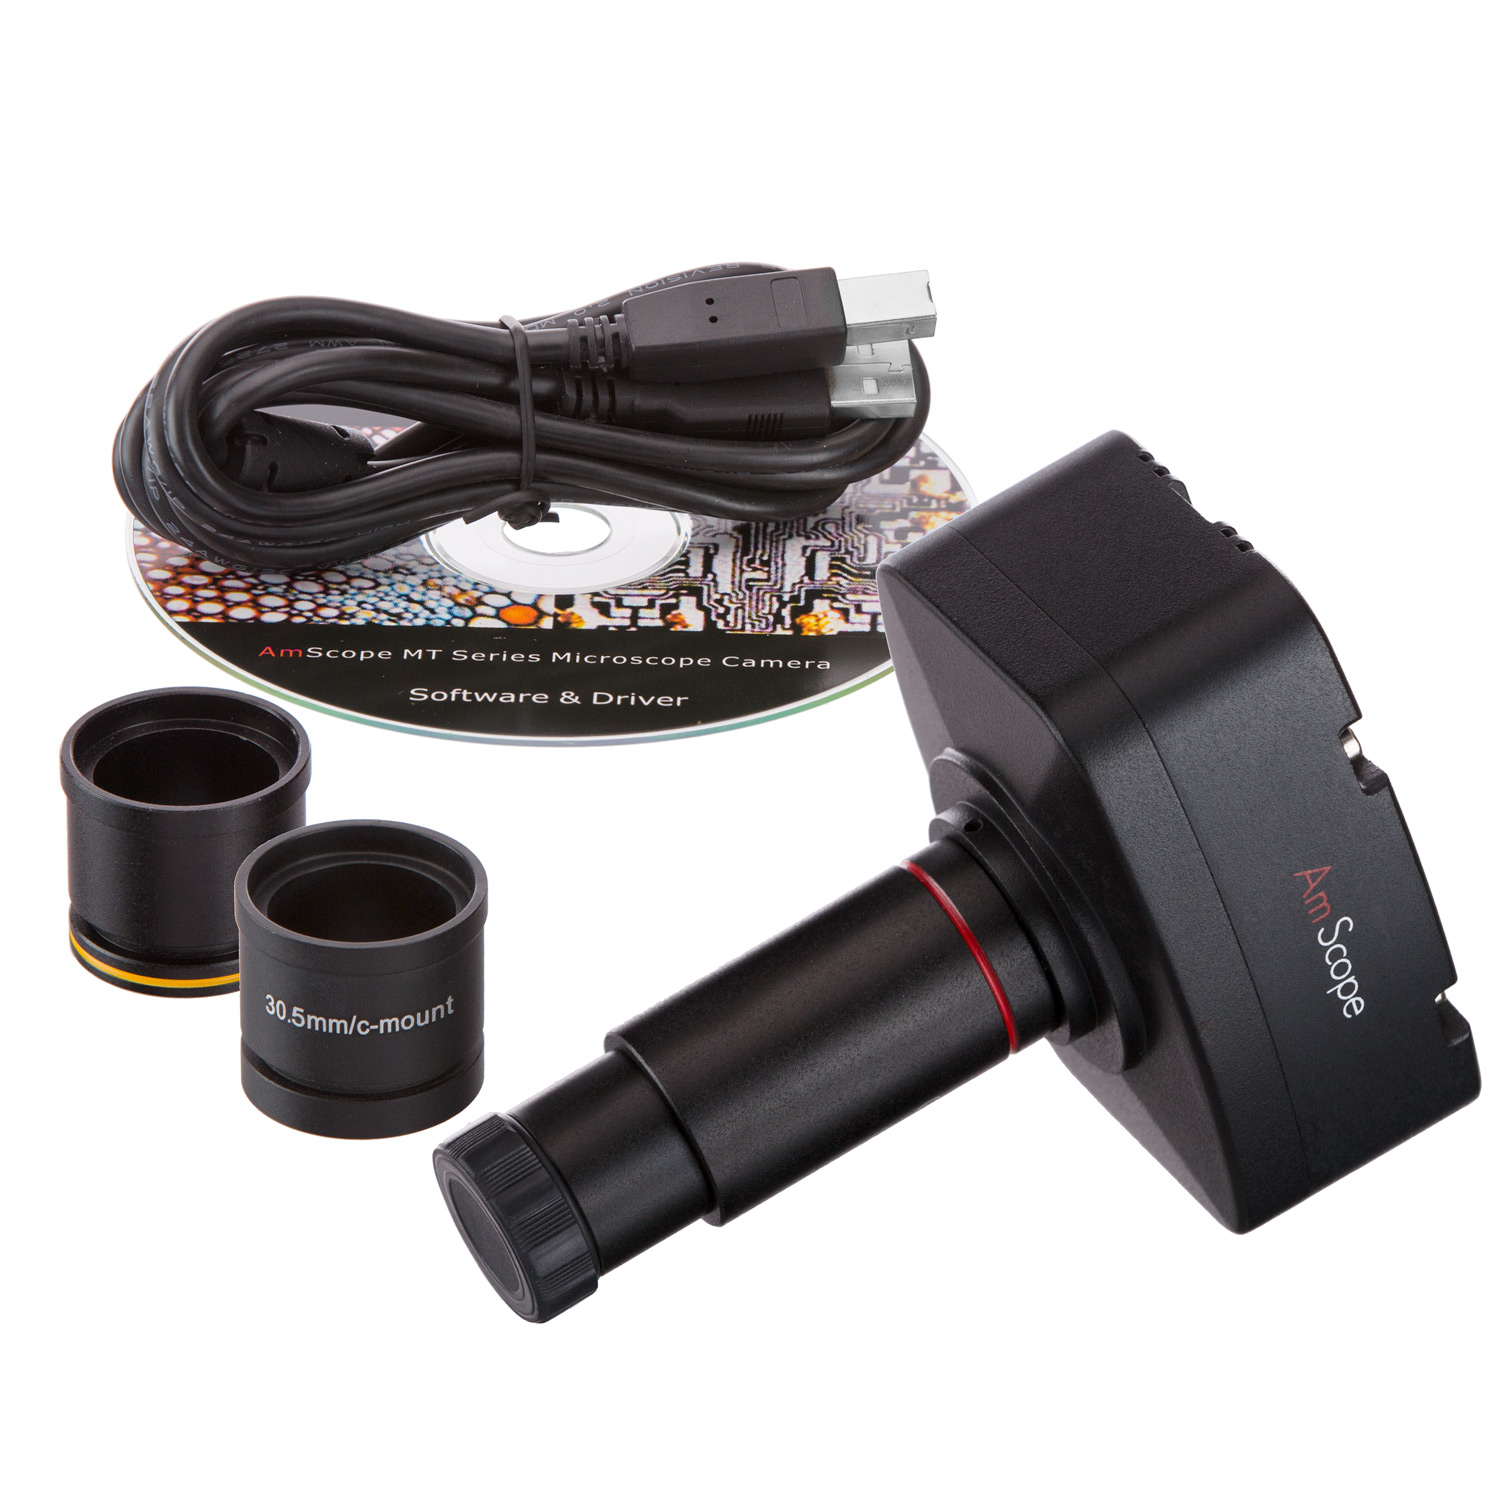 AmScope 3MP Microscope Digital Camera for Windows and Mac